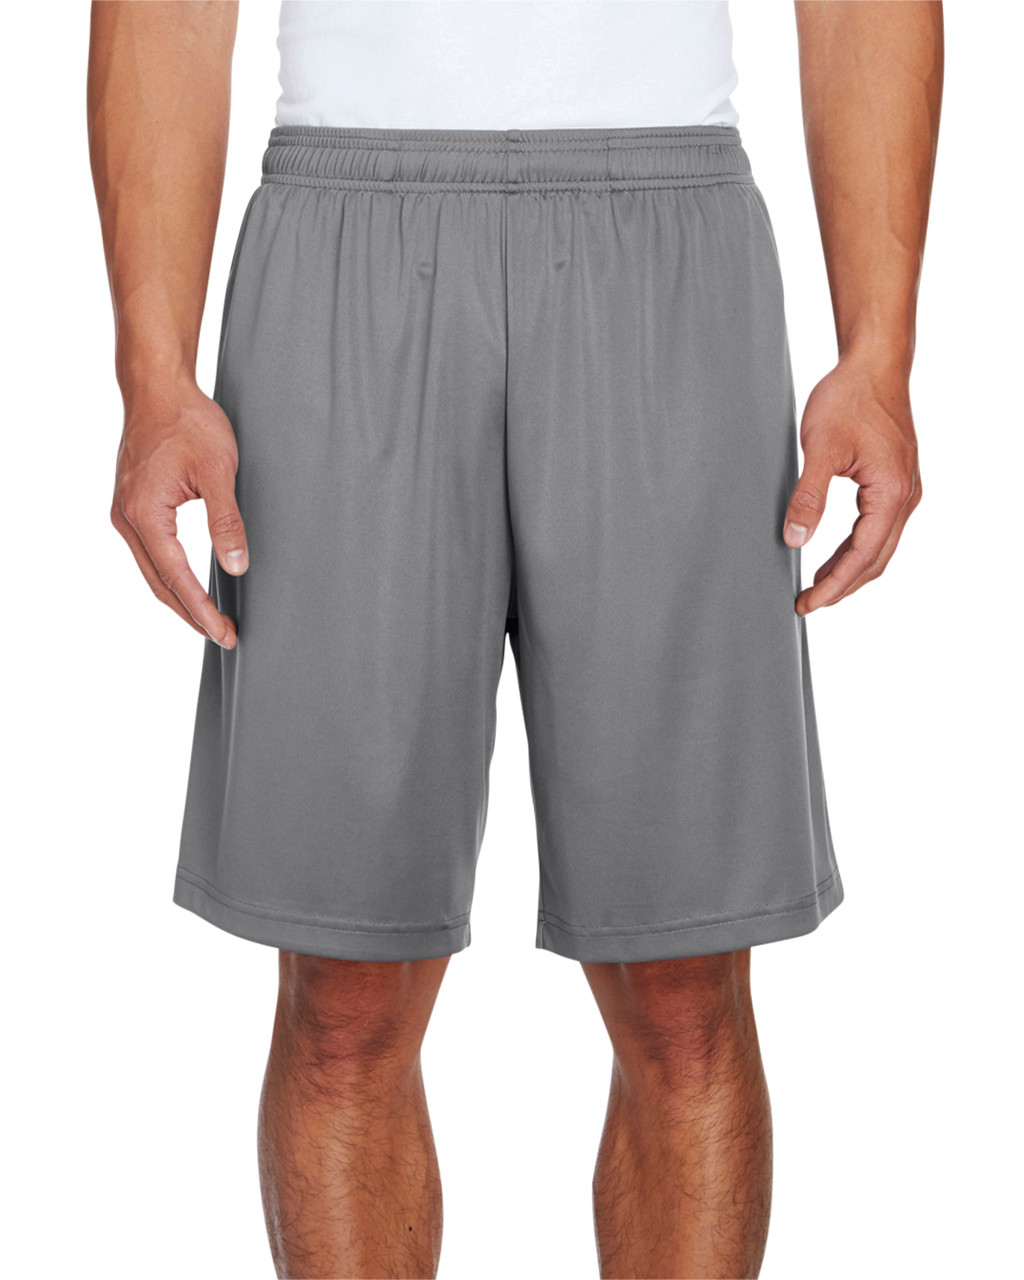 Sport Graphite - TT11SH Team 365 Men's Zone Performance Short | BlankClothing.ca